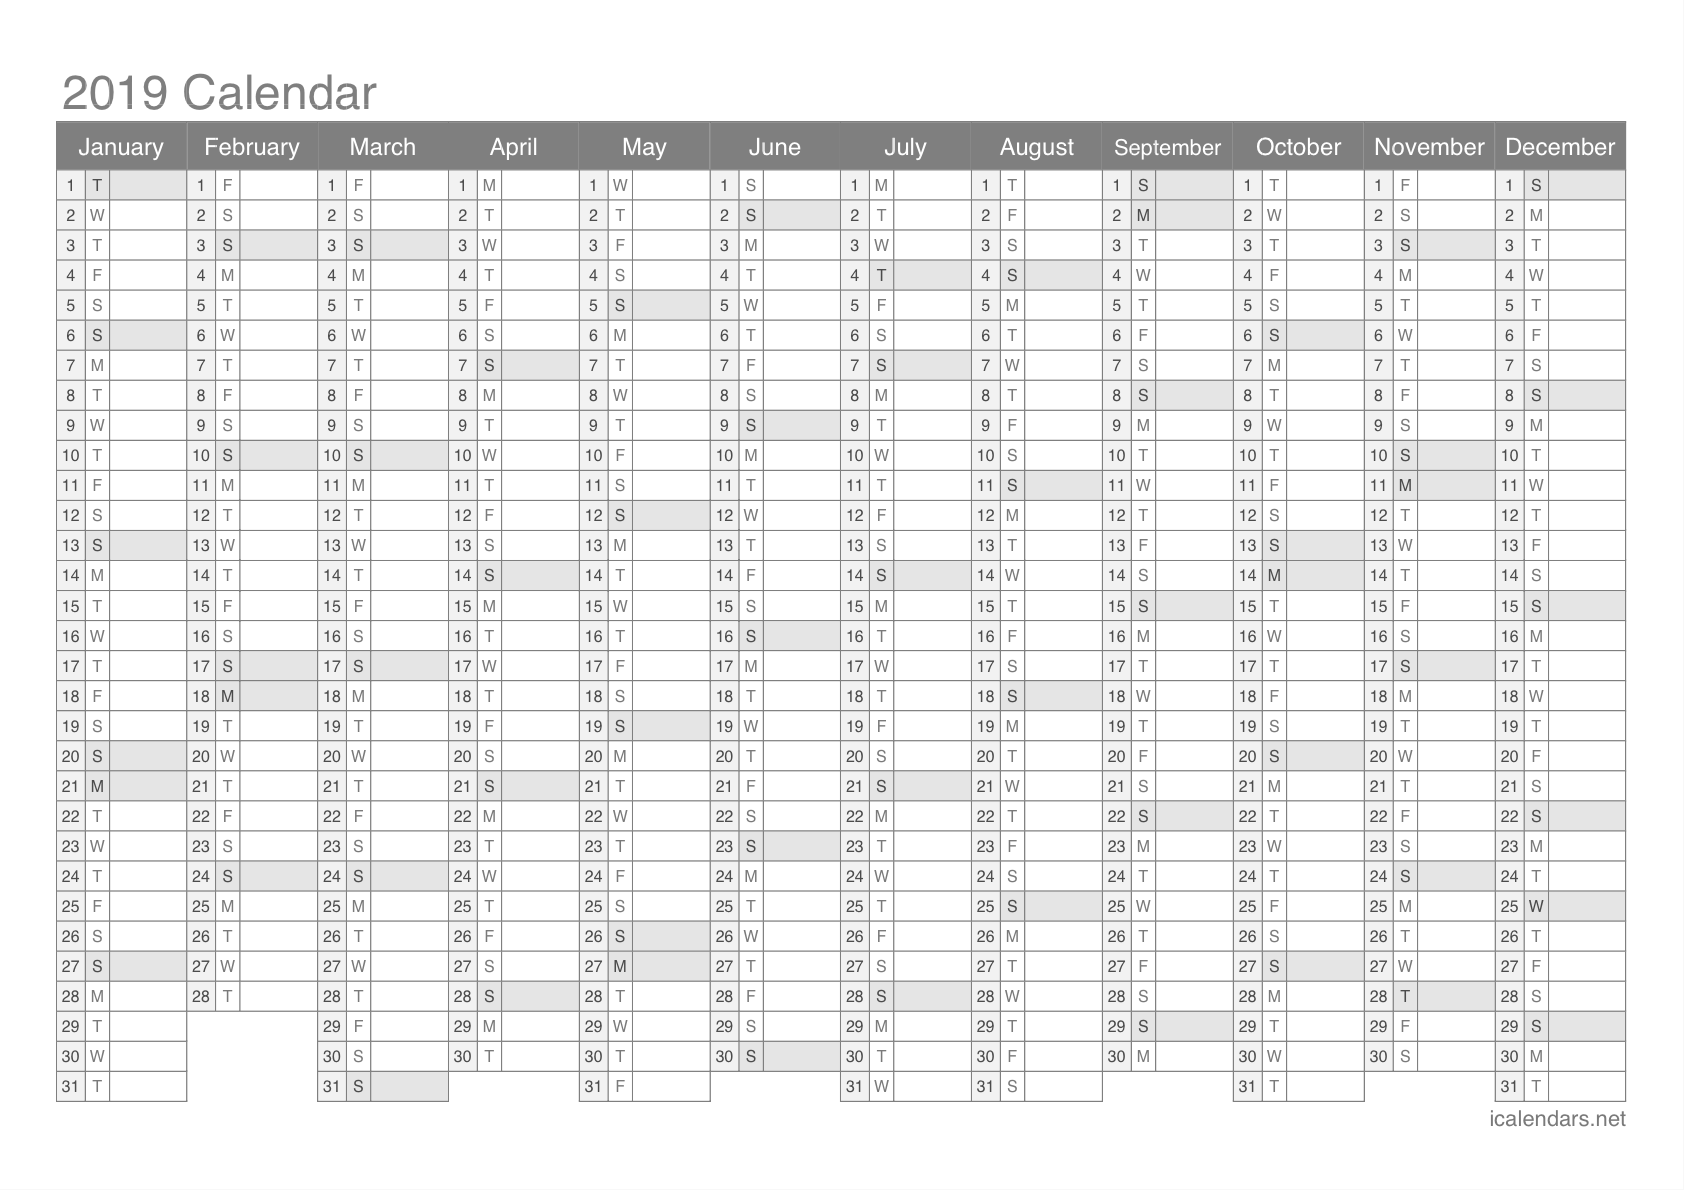 2019 Year Calendar Download With Printable PDF Or Excel Icalendars Net